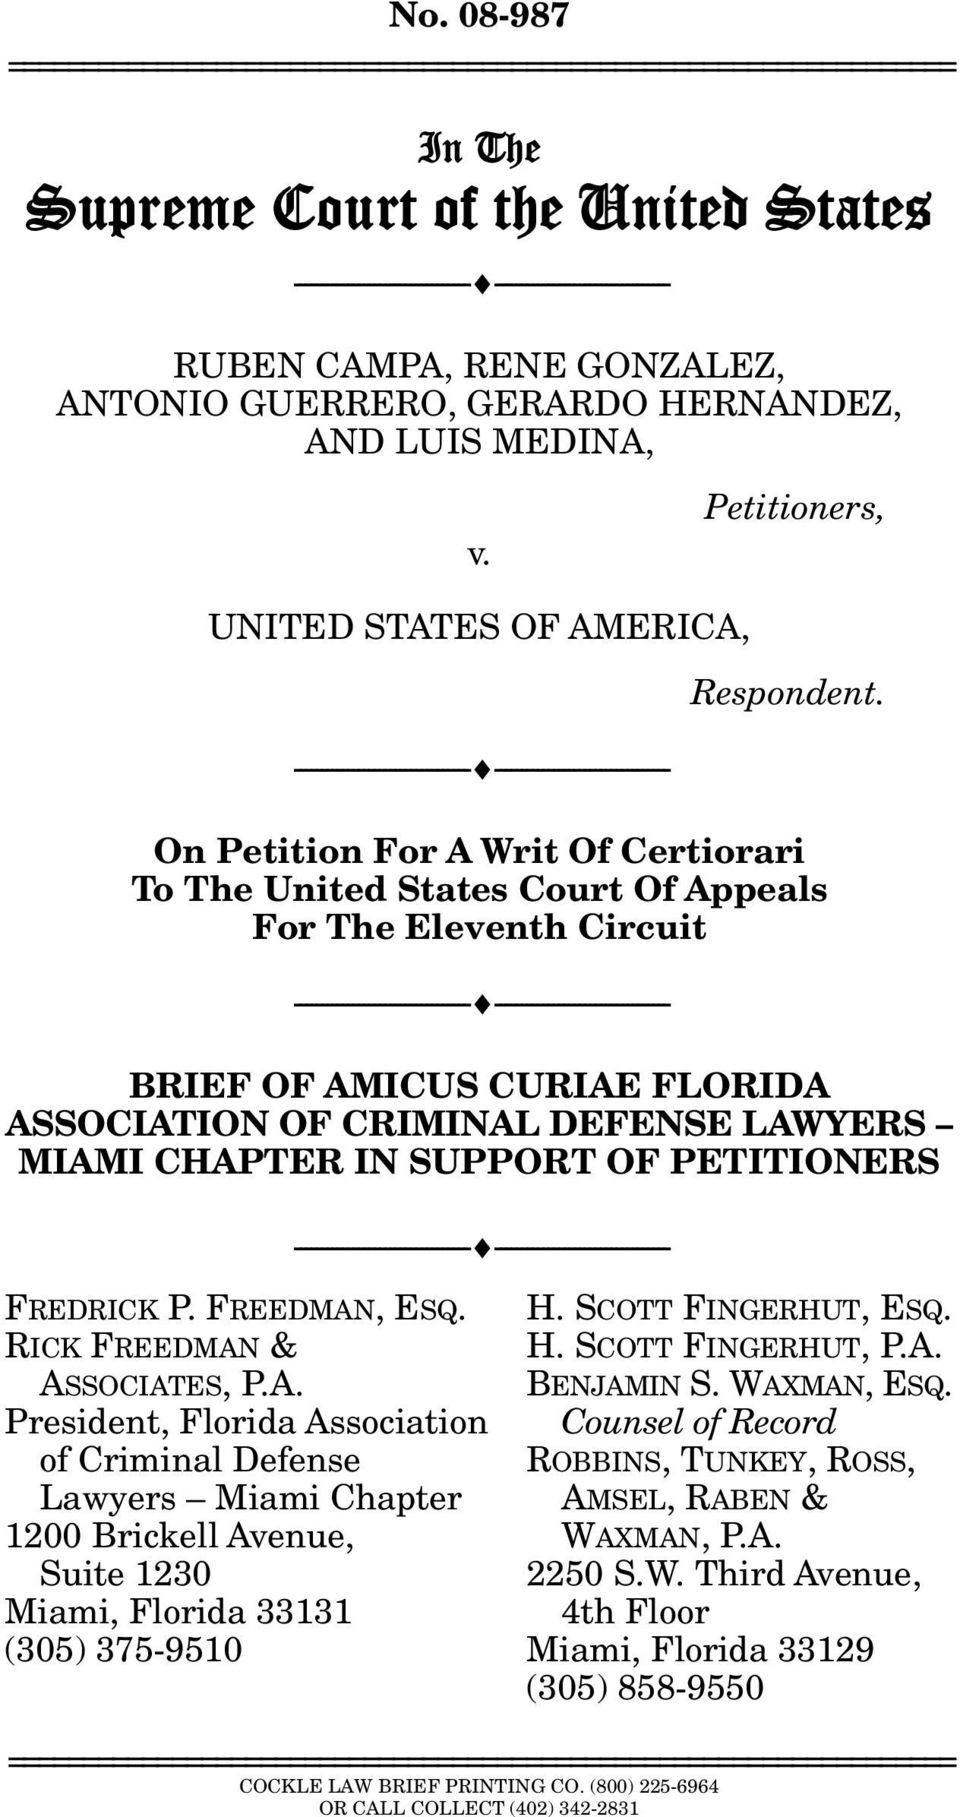 On Petition For A Writ Of Certiorari To The United States Court Of Appeals For The Eleventh Circuit --------------------------------- --------------------------------- BRIEF OF AMICUS CURIAE FLORIDA